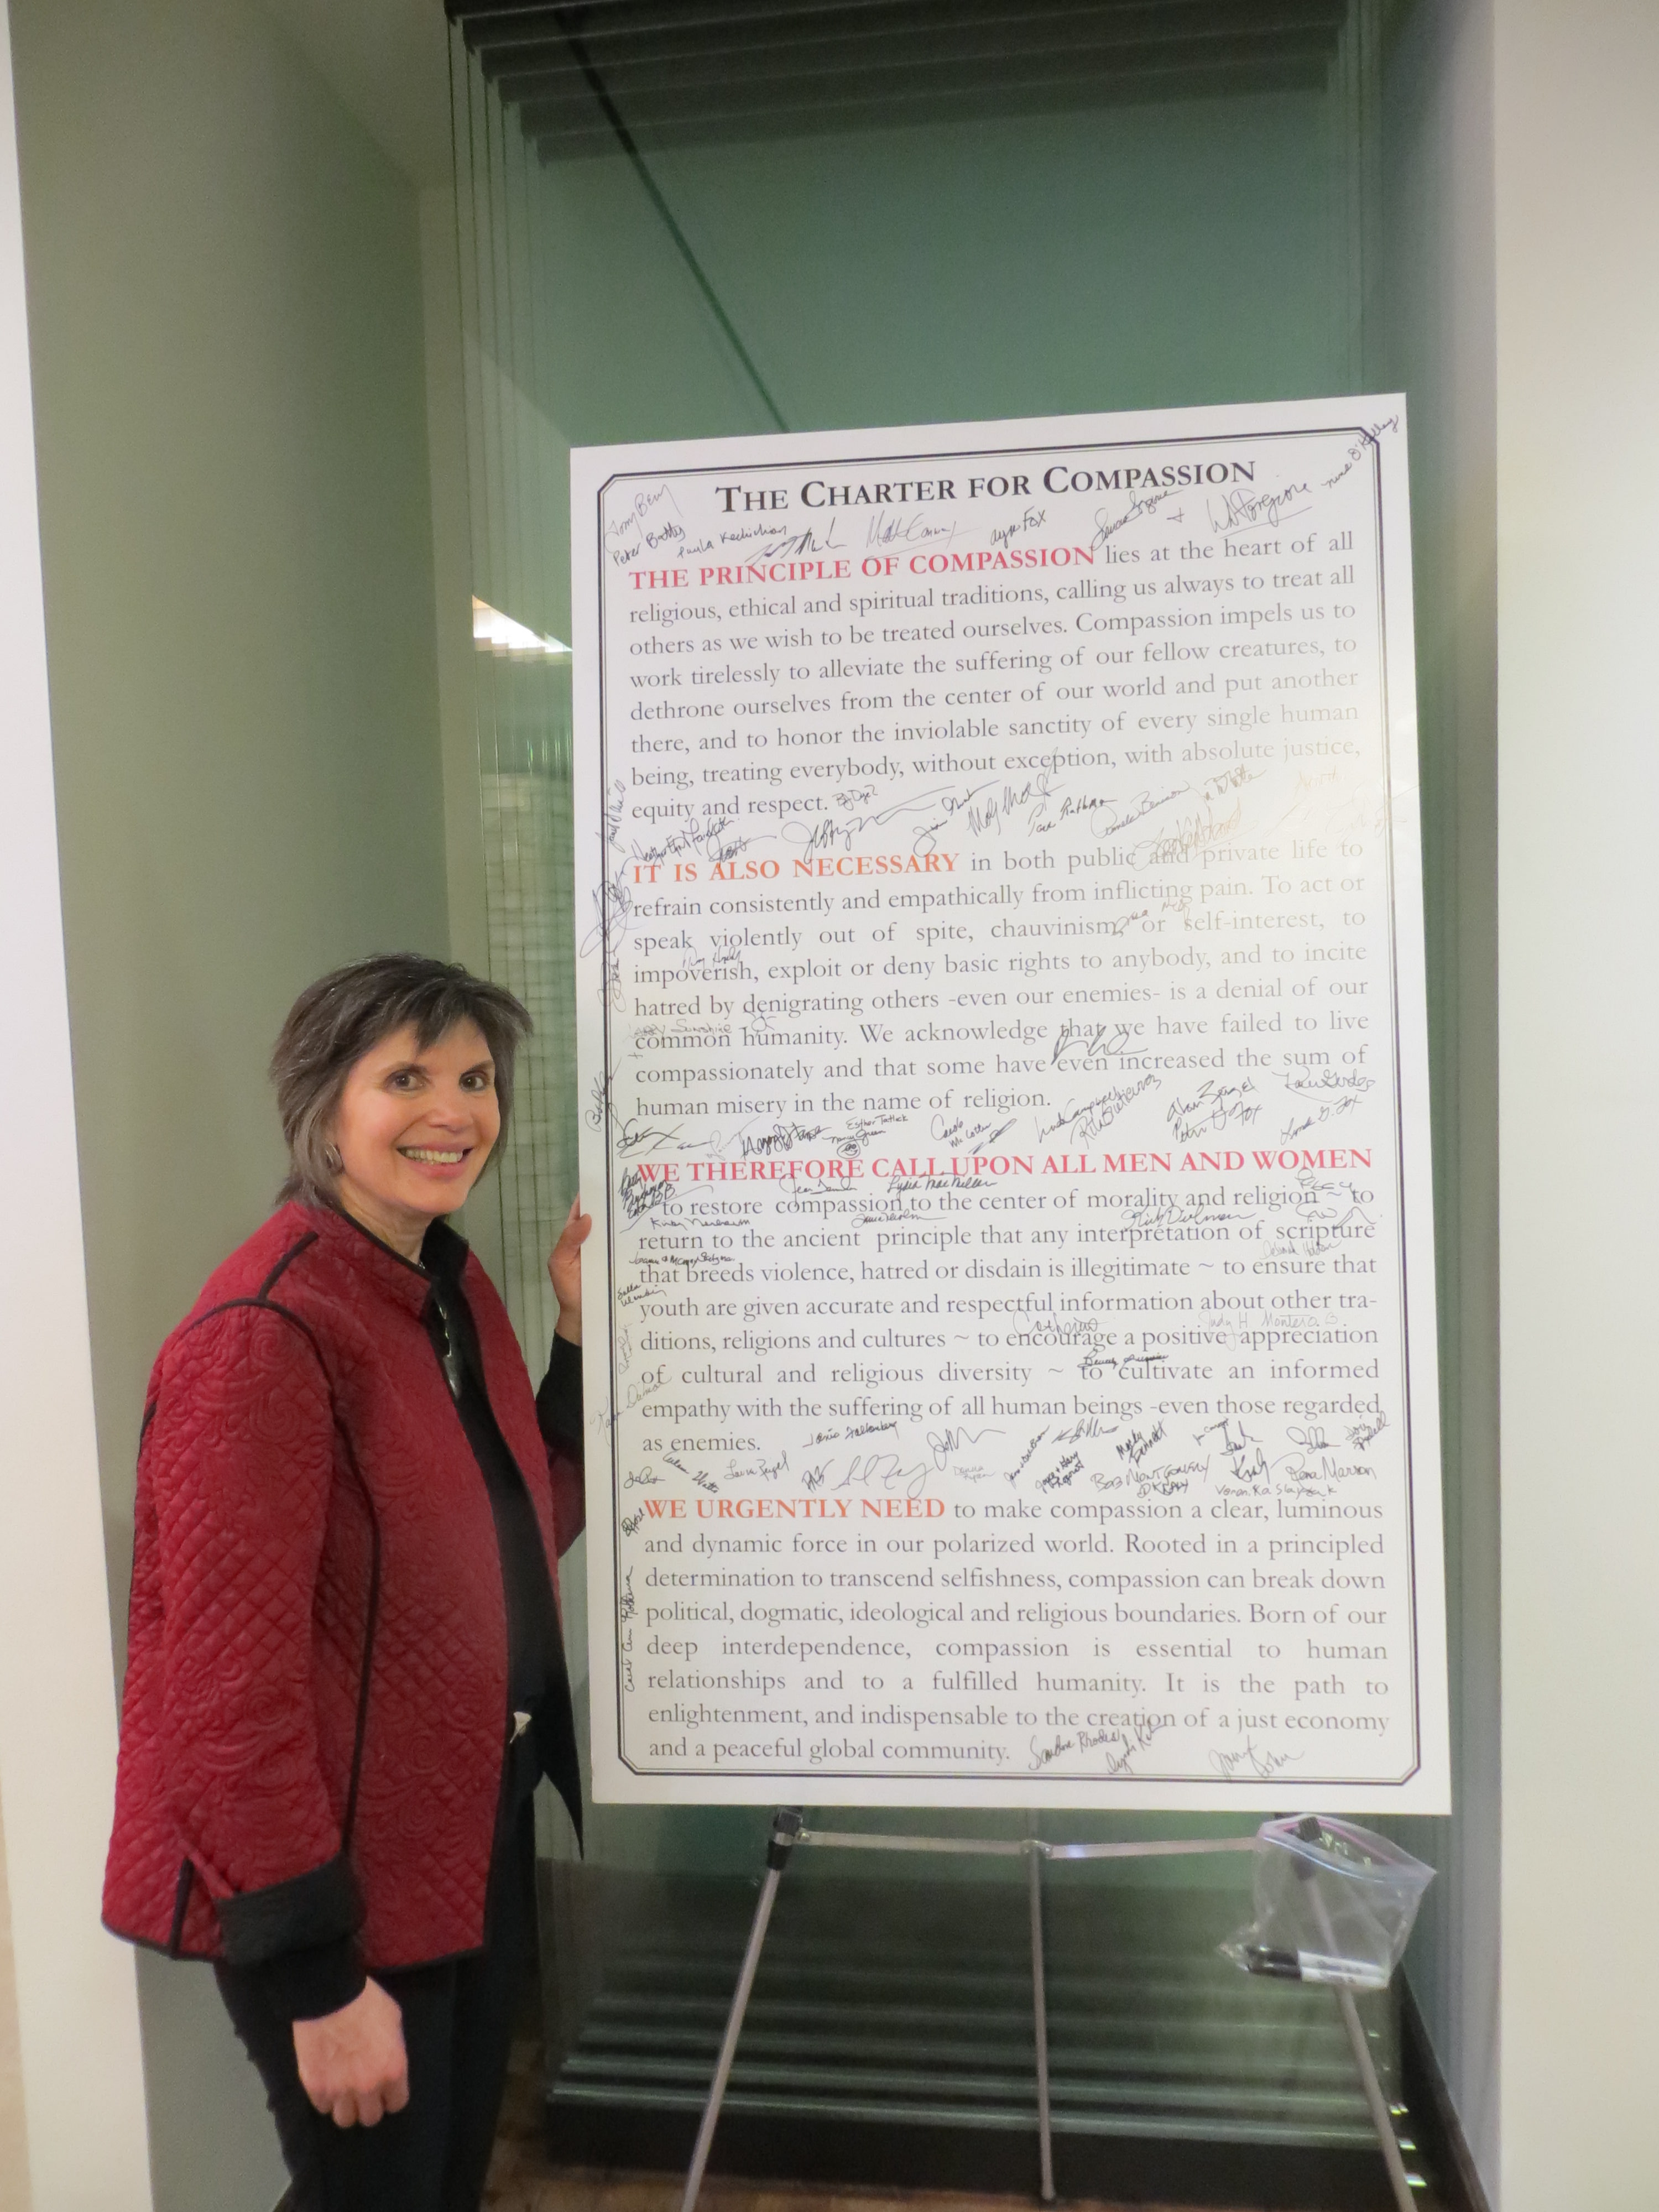 Ayn with the charter